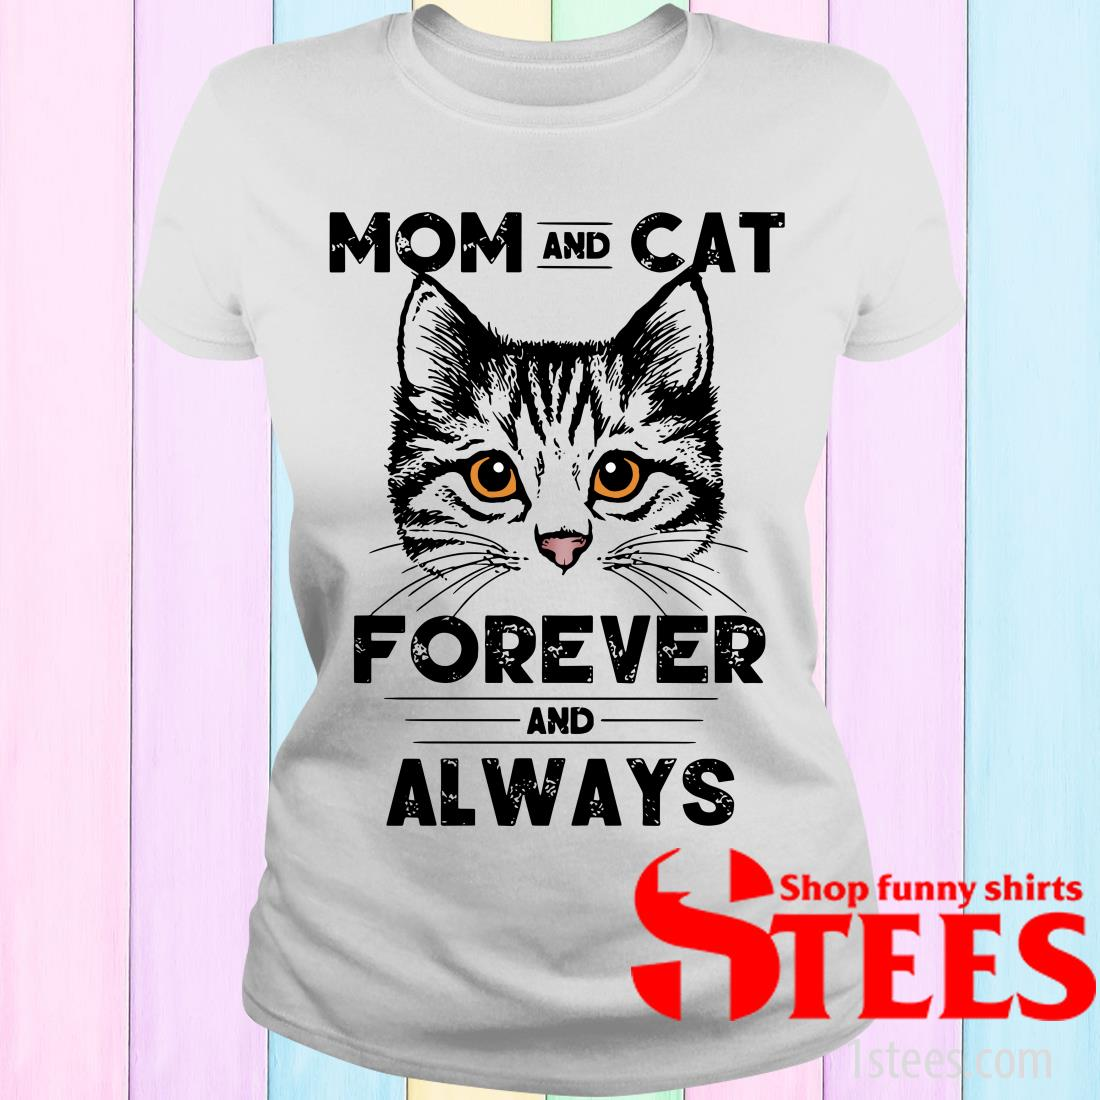 Mom And Cat Forever And Always Women's T-Shirt